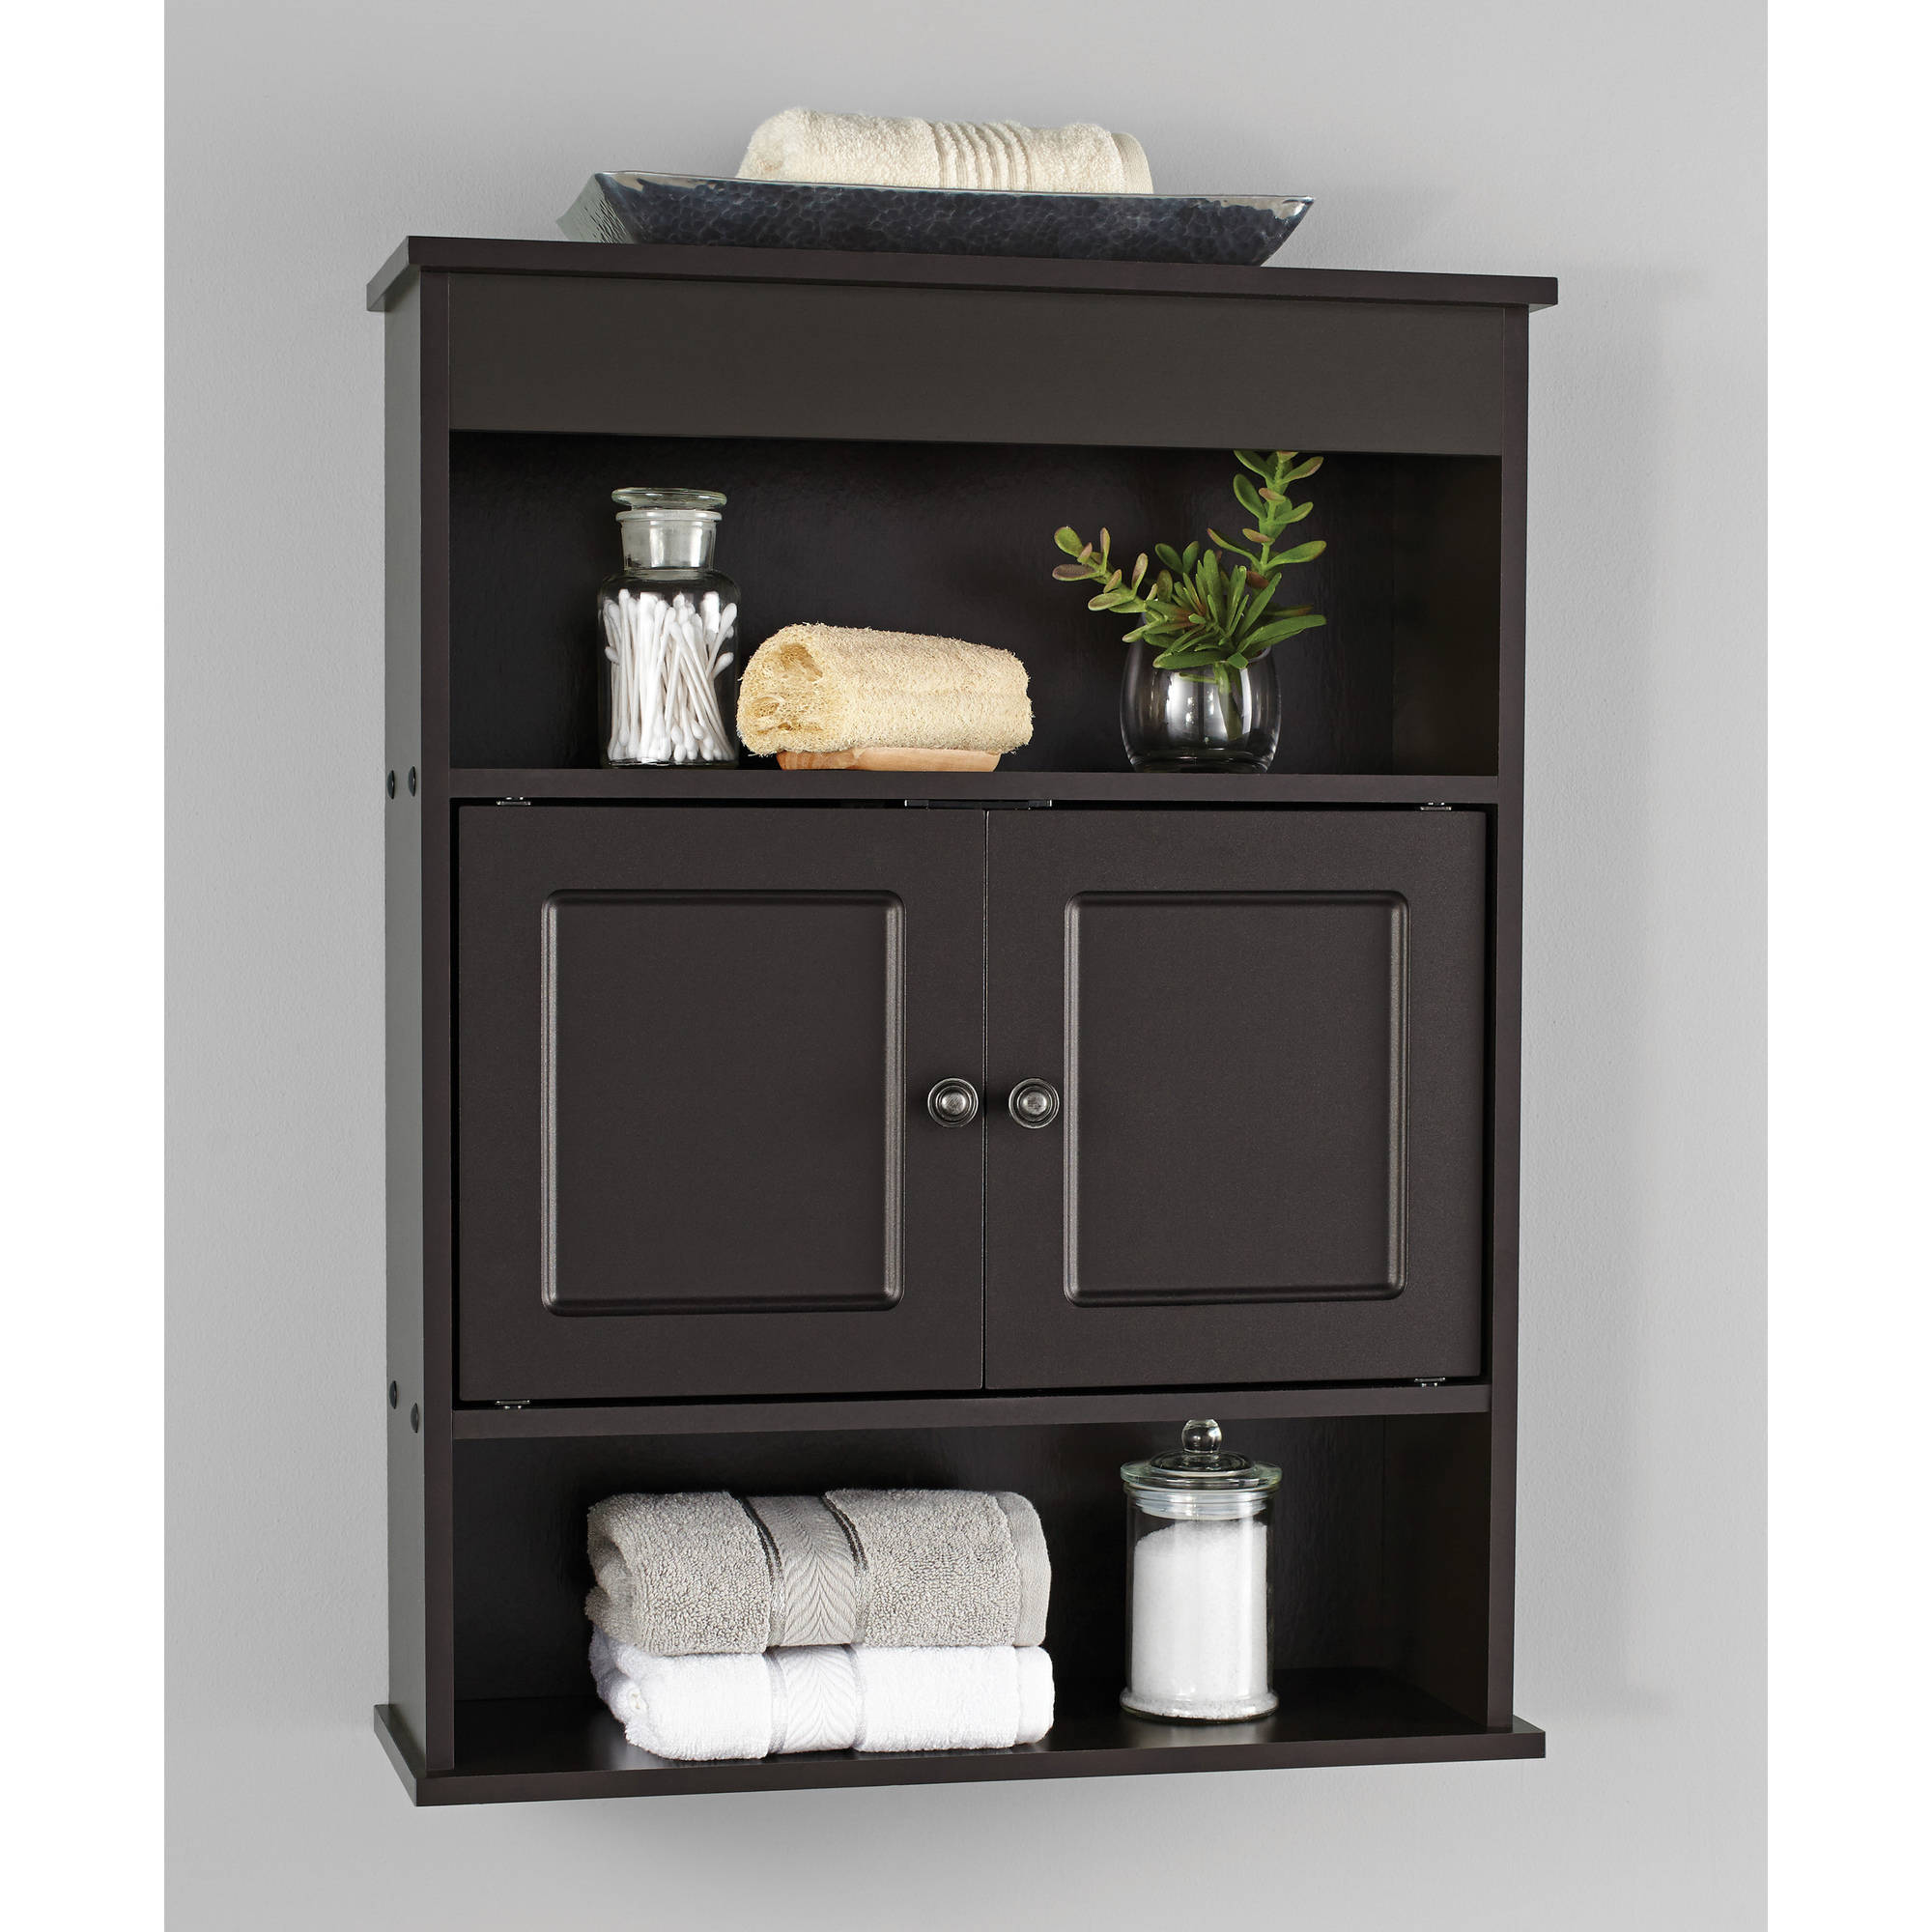 Chapter Bathroom Wall Cabinet Storage Shelf Espresso